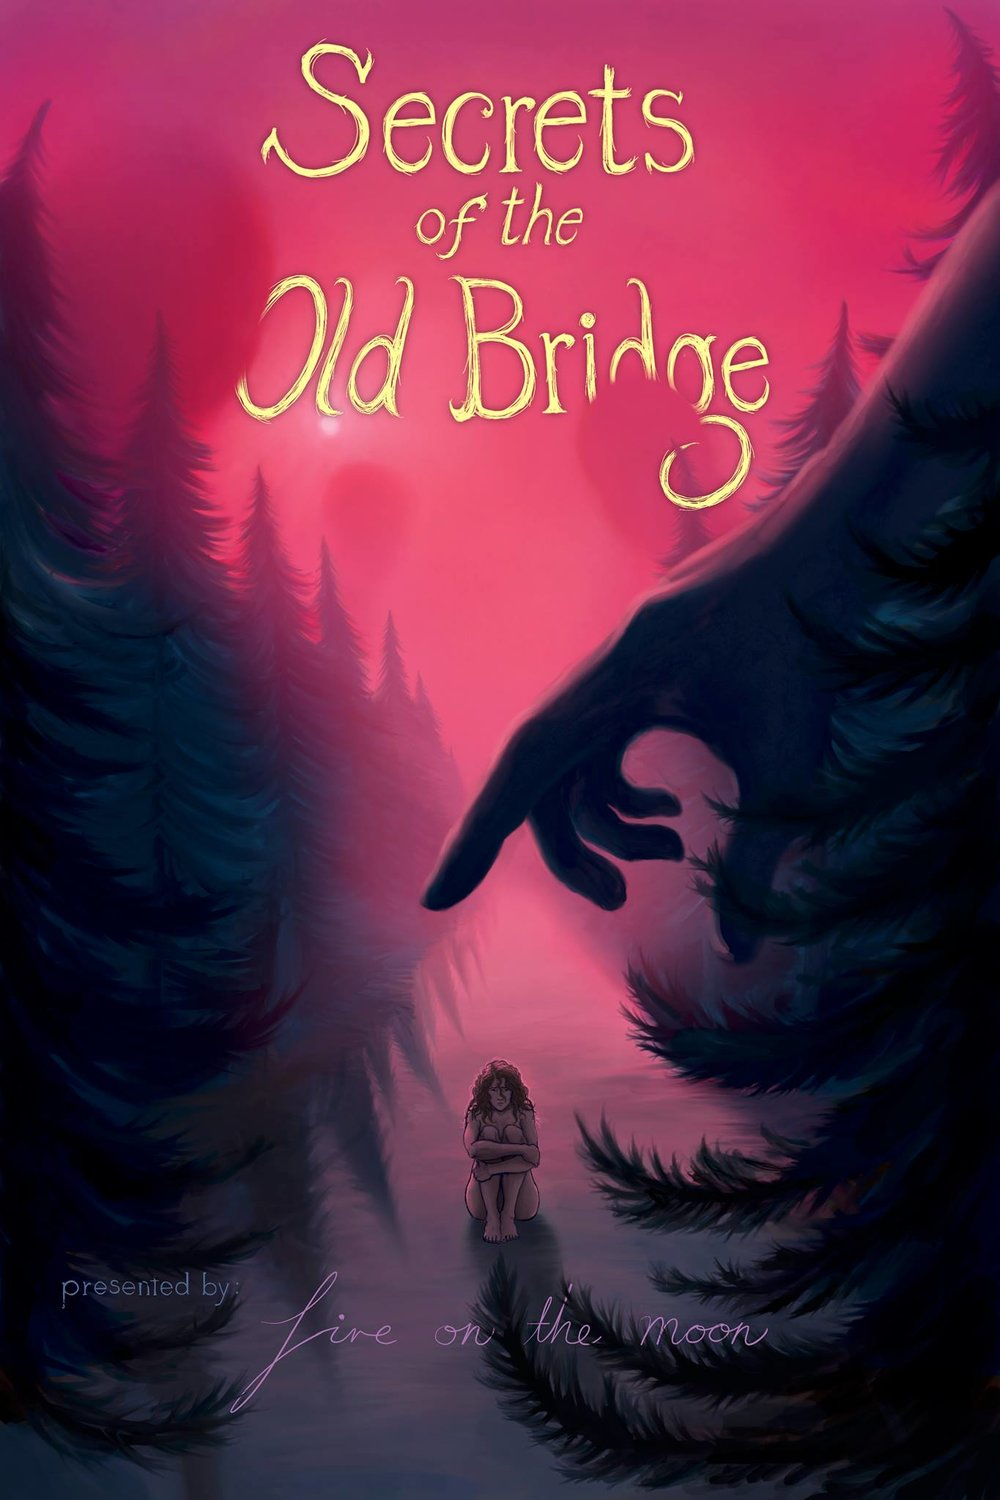 """Fire on the moon presents… Secrets of the old bridge - [PAST - December 2nd]In """"Secrets of the Old Bridge"""", you'll step into the mind and heart of a young woman named Laramie as she learns to navigate her long-held trauma with the help of those who love her.This will be a free, proof-of-concept show with a Q&A session with our audience afterward.// This project was born out of a fascination with the concept of emotional immediacy. We want to create a show that acts as a tool that could reliably translate abstract, complex concepts into a music-driven theatrical performance in the physical space. The ultimate goal is to take what we learn and offer musicians the ability to perform and for the people watching to be able to grasp the emotions and themes embedded in their music with ease. //About Your Experience:- The performance lasts 55 minutes without intermission. You will only be able to use the restroom during the pre-show portion of the experience. - Please keep in mind when you reserve your free ticket(s): there is limited seating in the general admission area. If you prefer to be seated, please reserve a"""